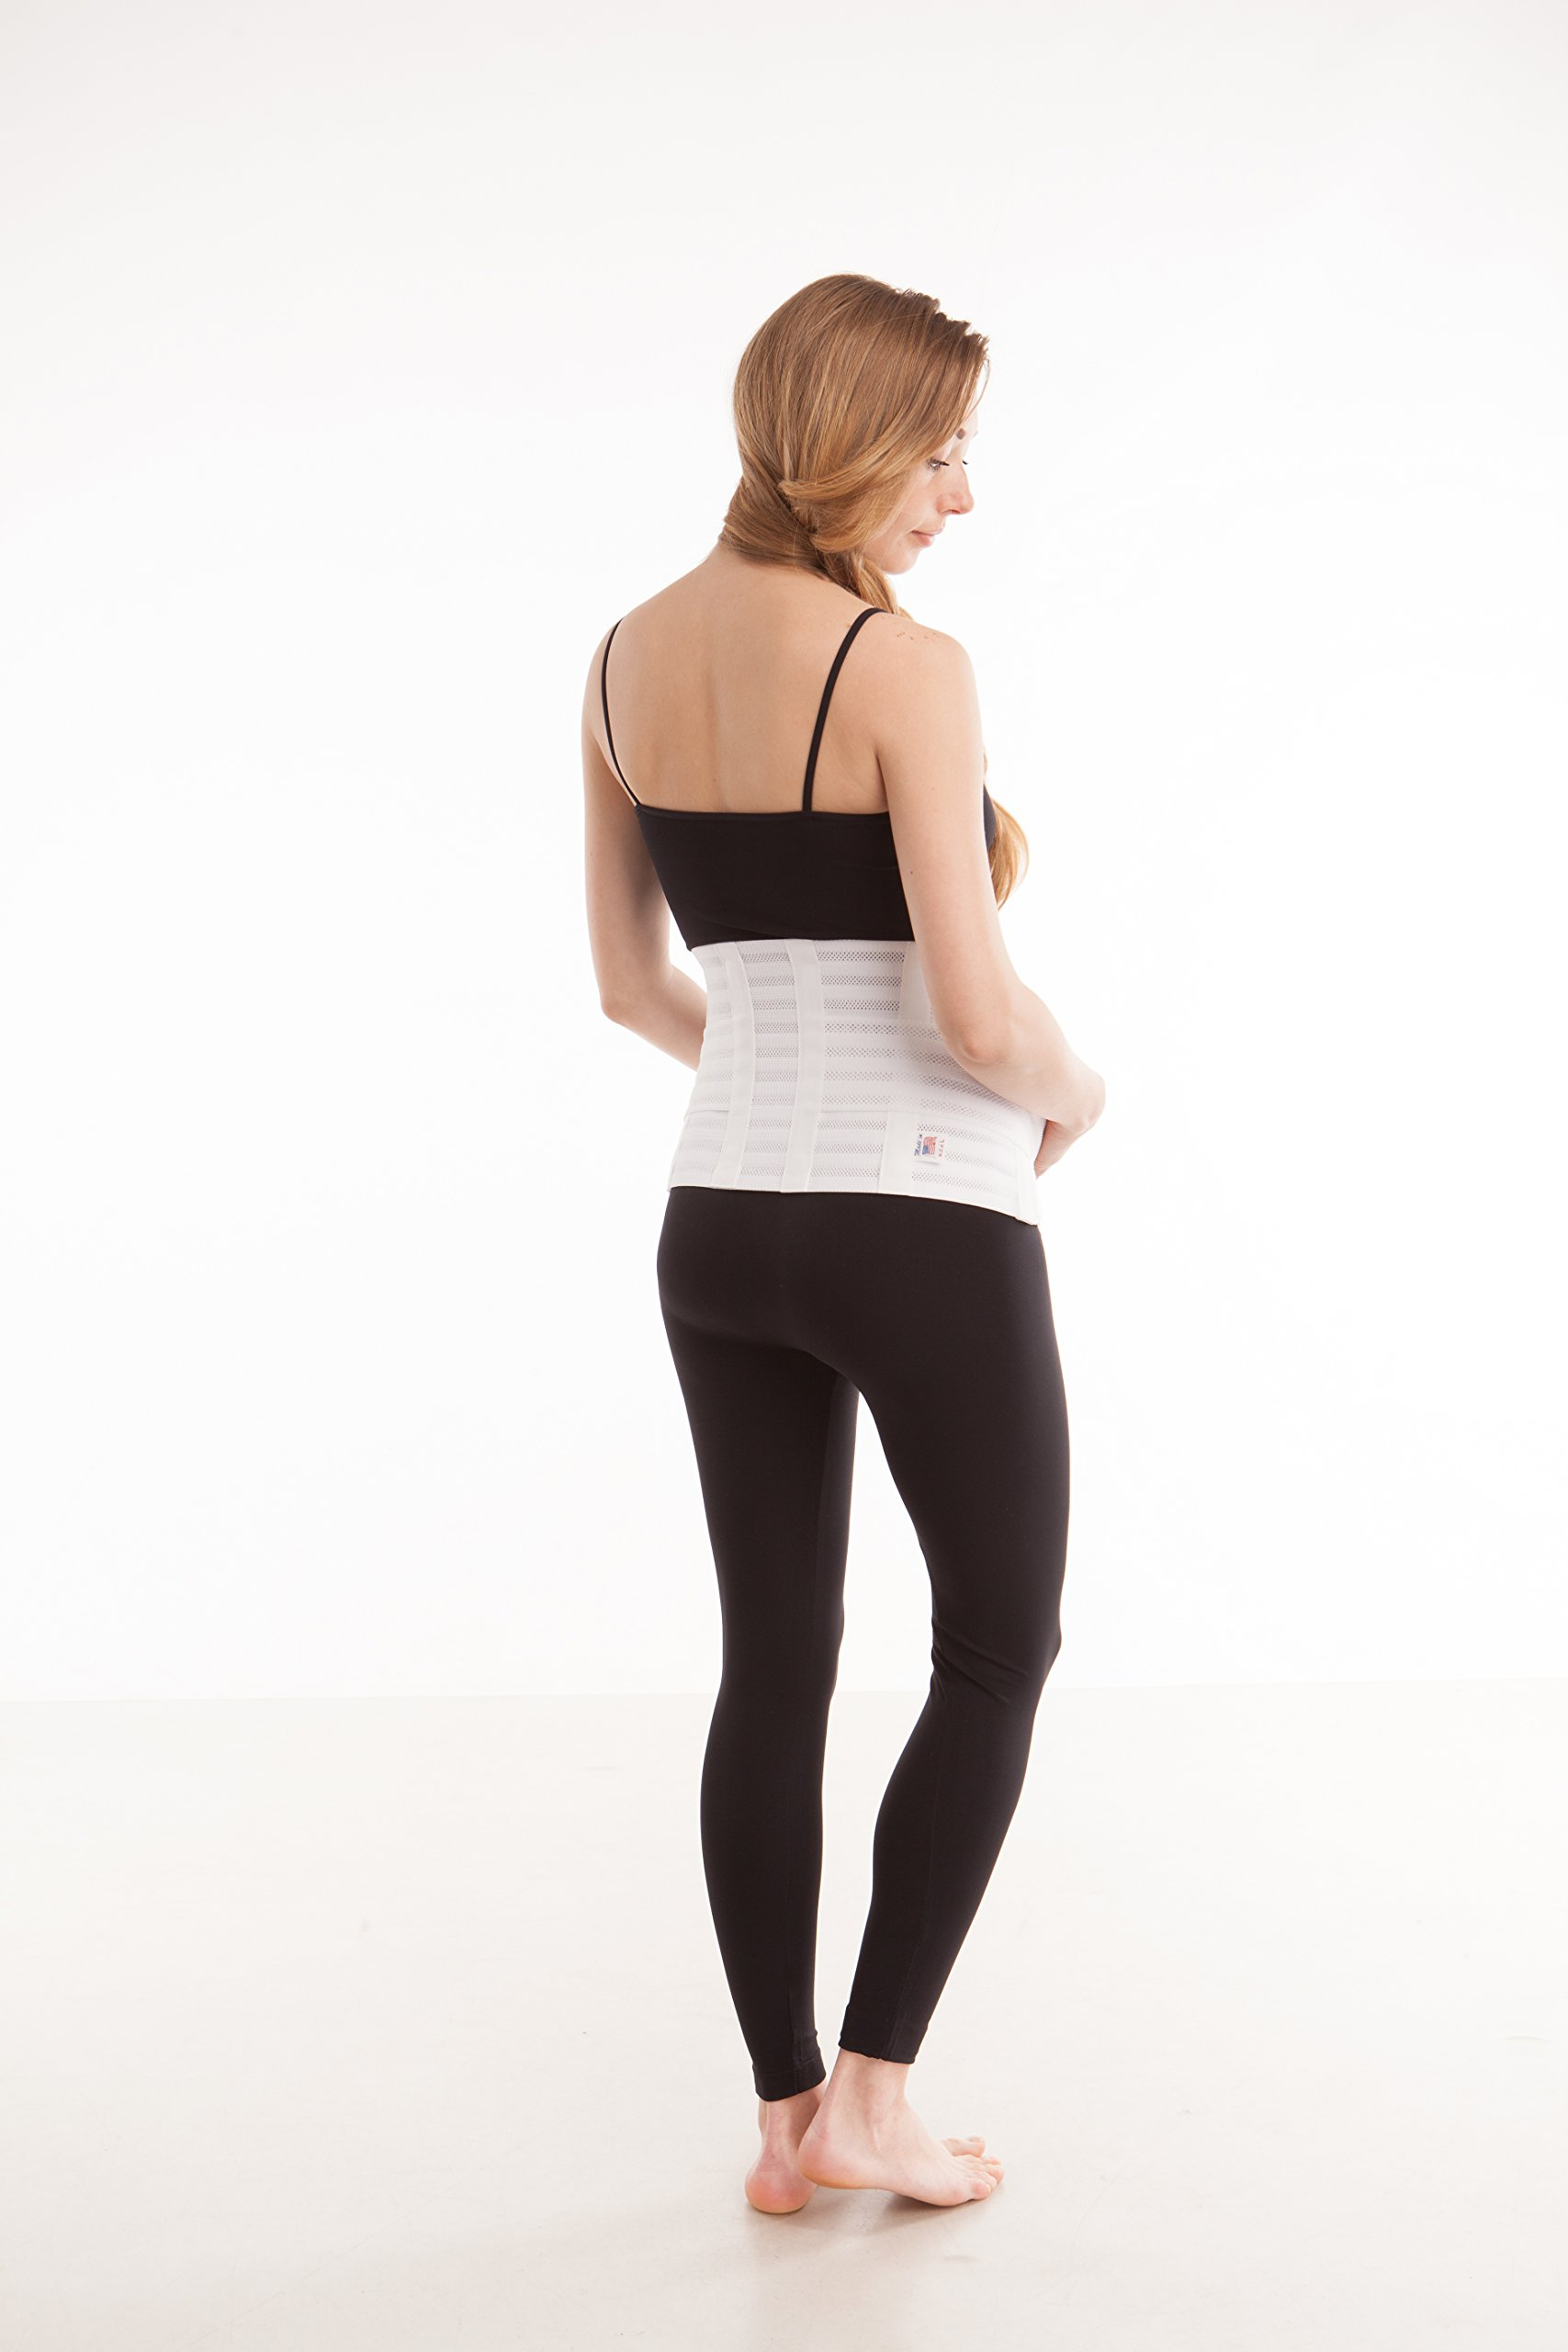 GABRIALLA Breathable Maternity/Back Support Belt For Multiples MS-99: White Medium by GABRIALLA (Image #4)